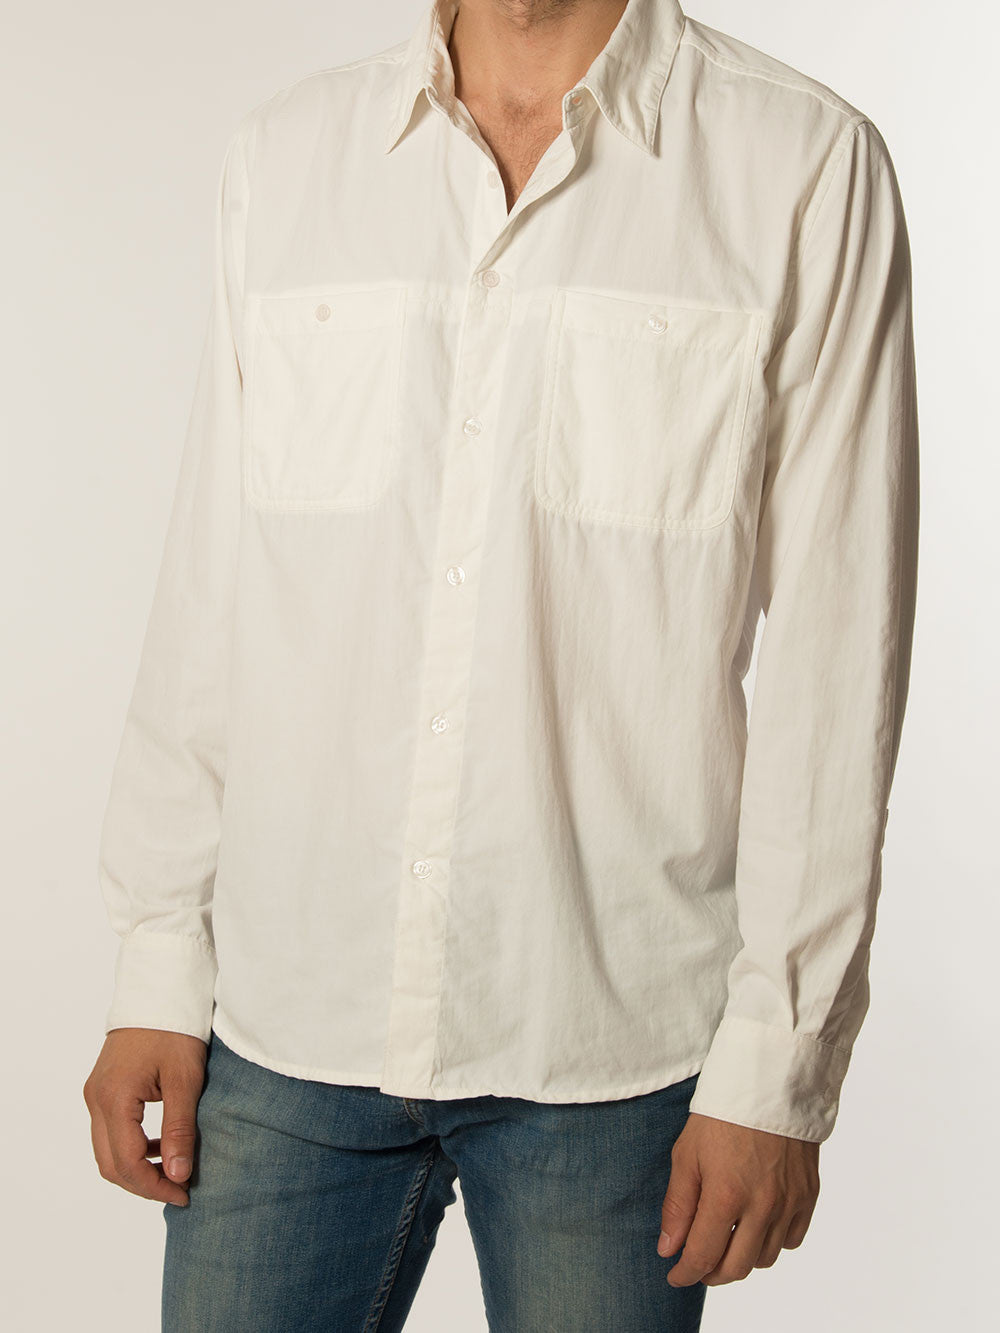 Collection Mens Travel Shirts With Hidden Pockets Pictures